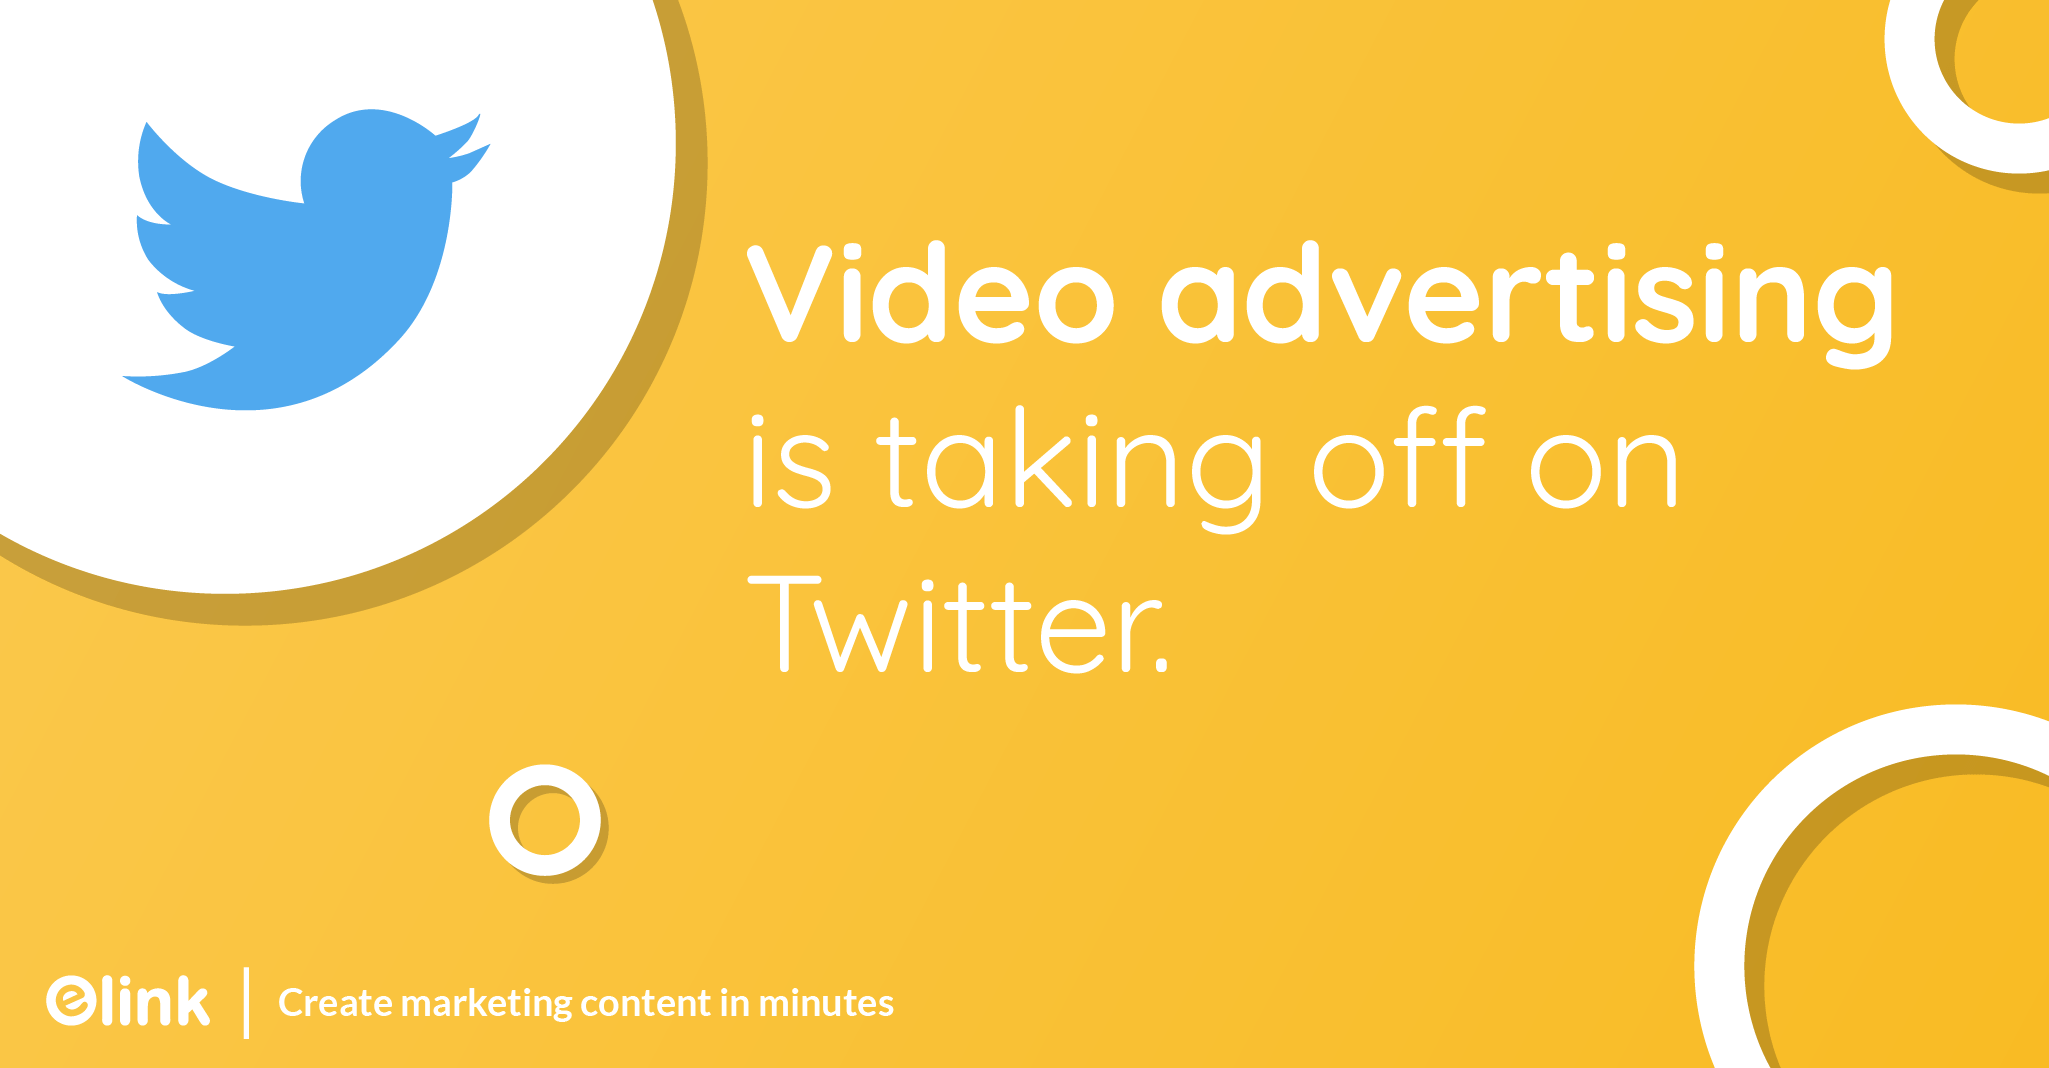 Video advertising is taking off on Twitter.